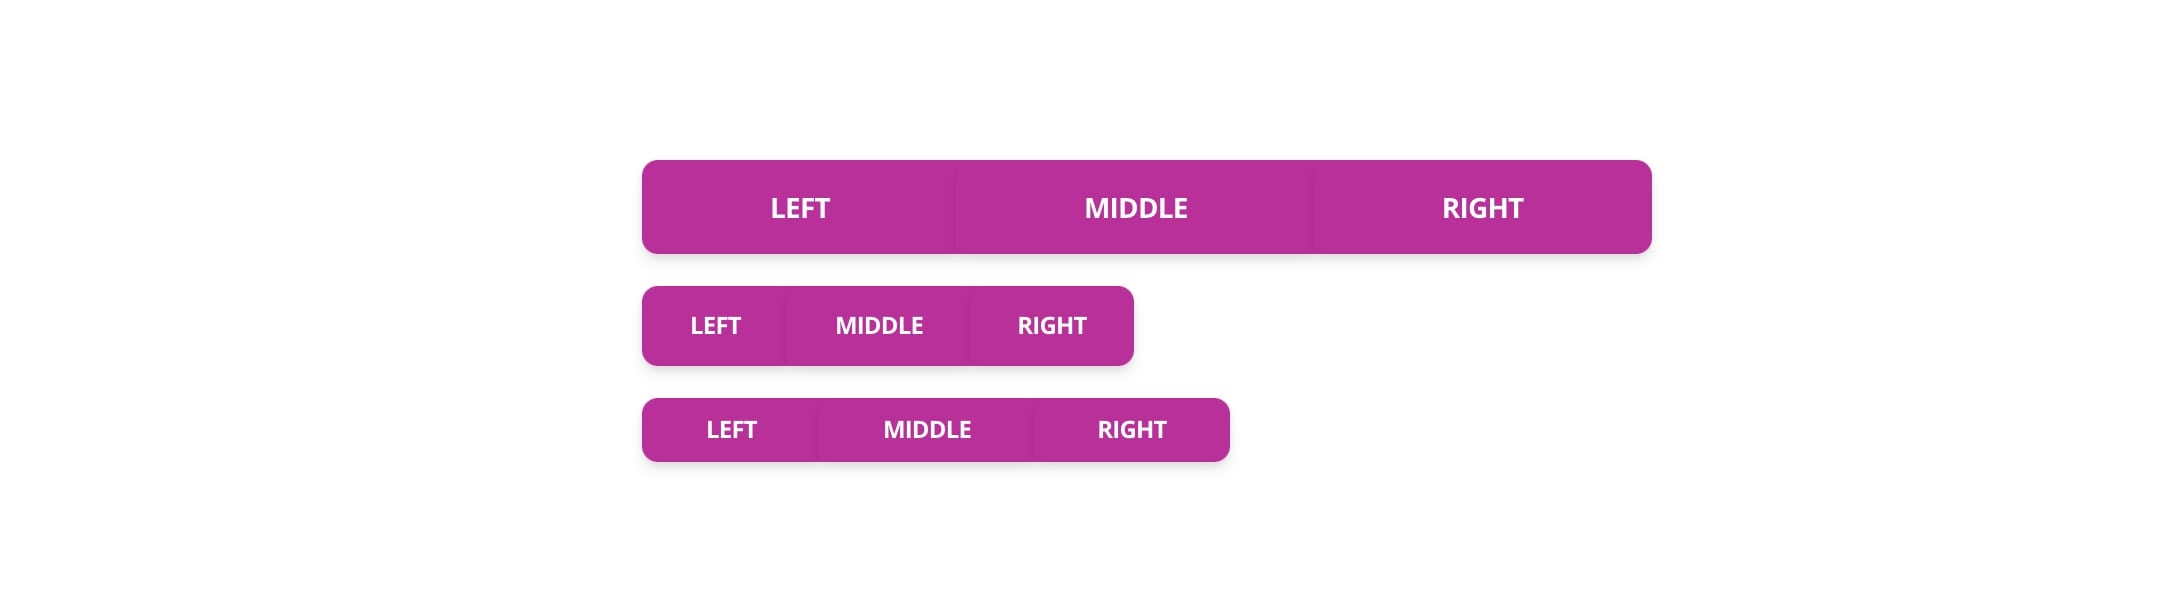 button-groups-5